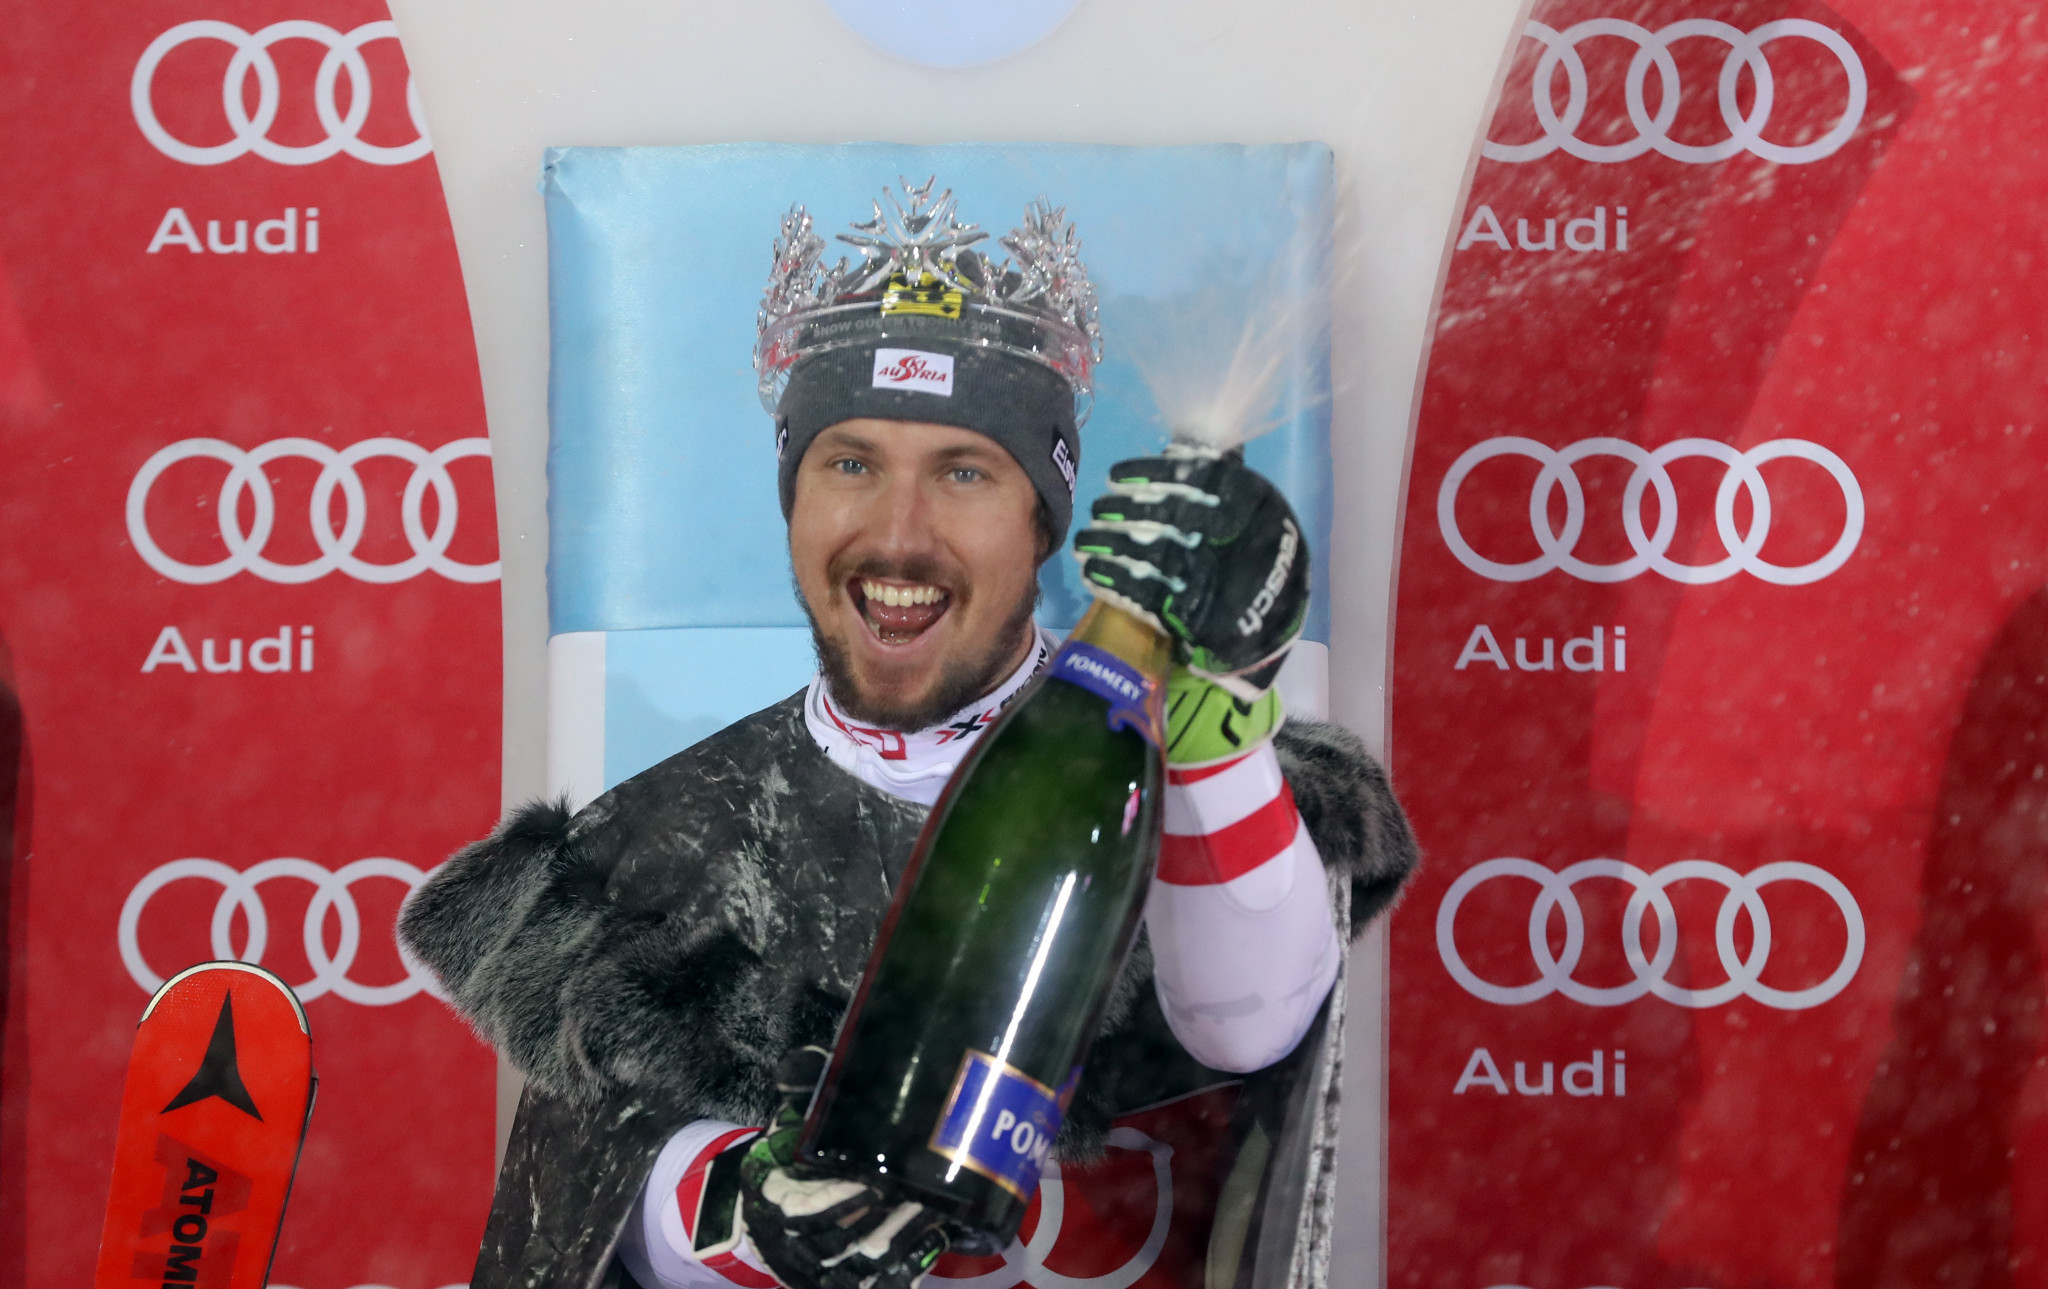 Marcel Hirscher won the Snow Queen Trophy at the FIS Alpine Skiing World Cup event in Zagreb ©Getty Images